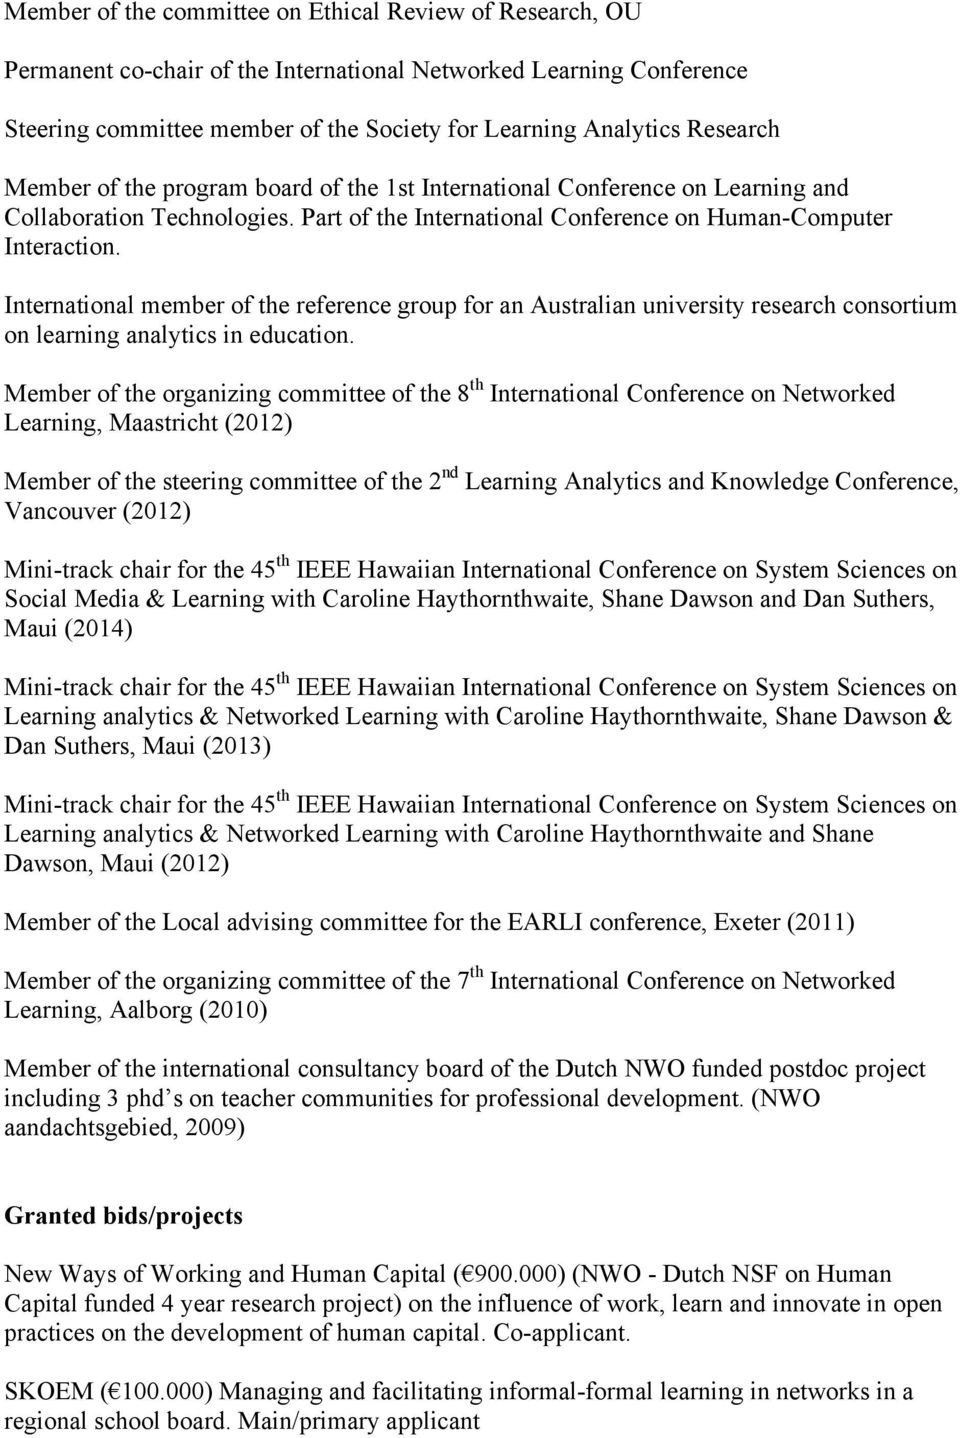 International member of the reference group for an Australian university research consortium on learning analytics in education.